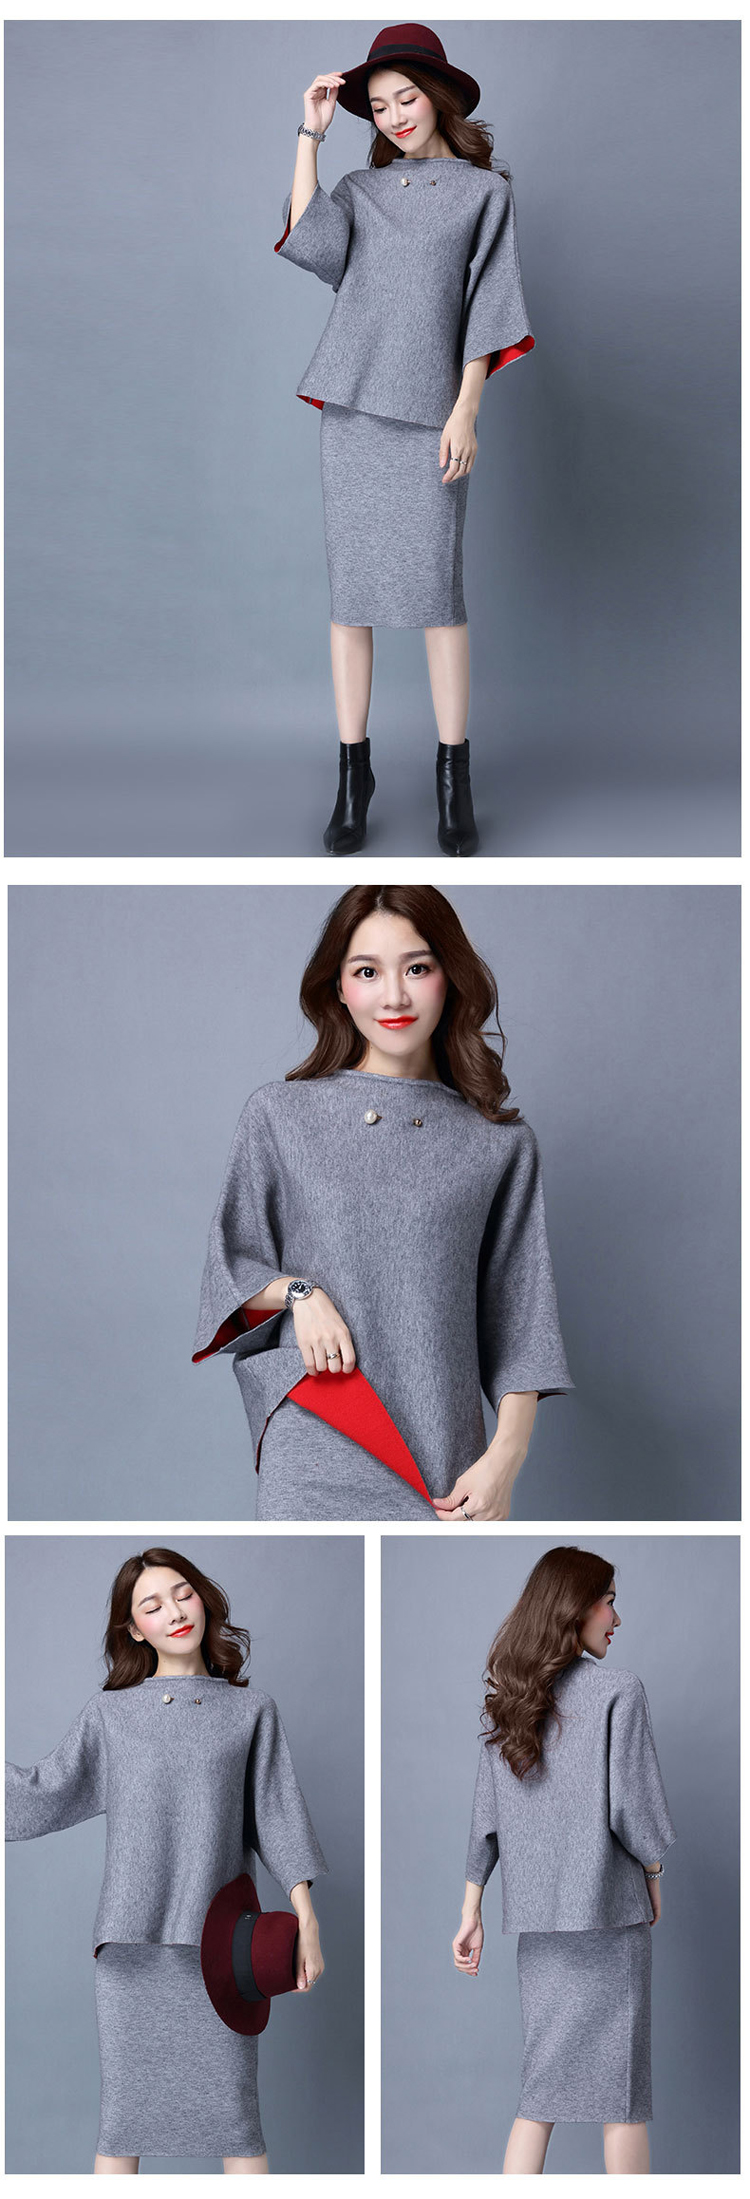 Female Winter Pullover Sweat Suits Women Cashmere Sweater Women Suits Clothing Sets Women Sweatsuit Conjuntos Femininos 005